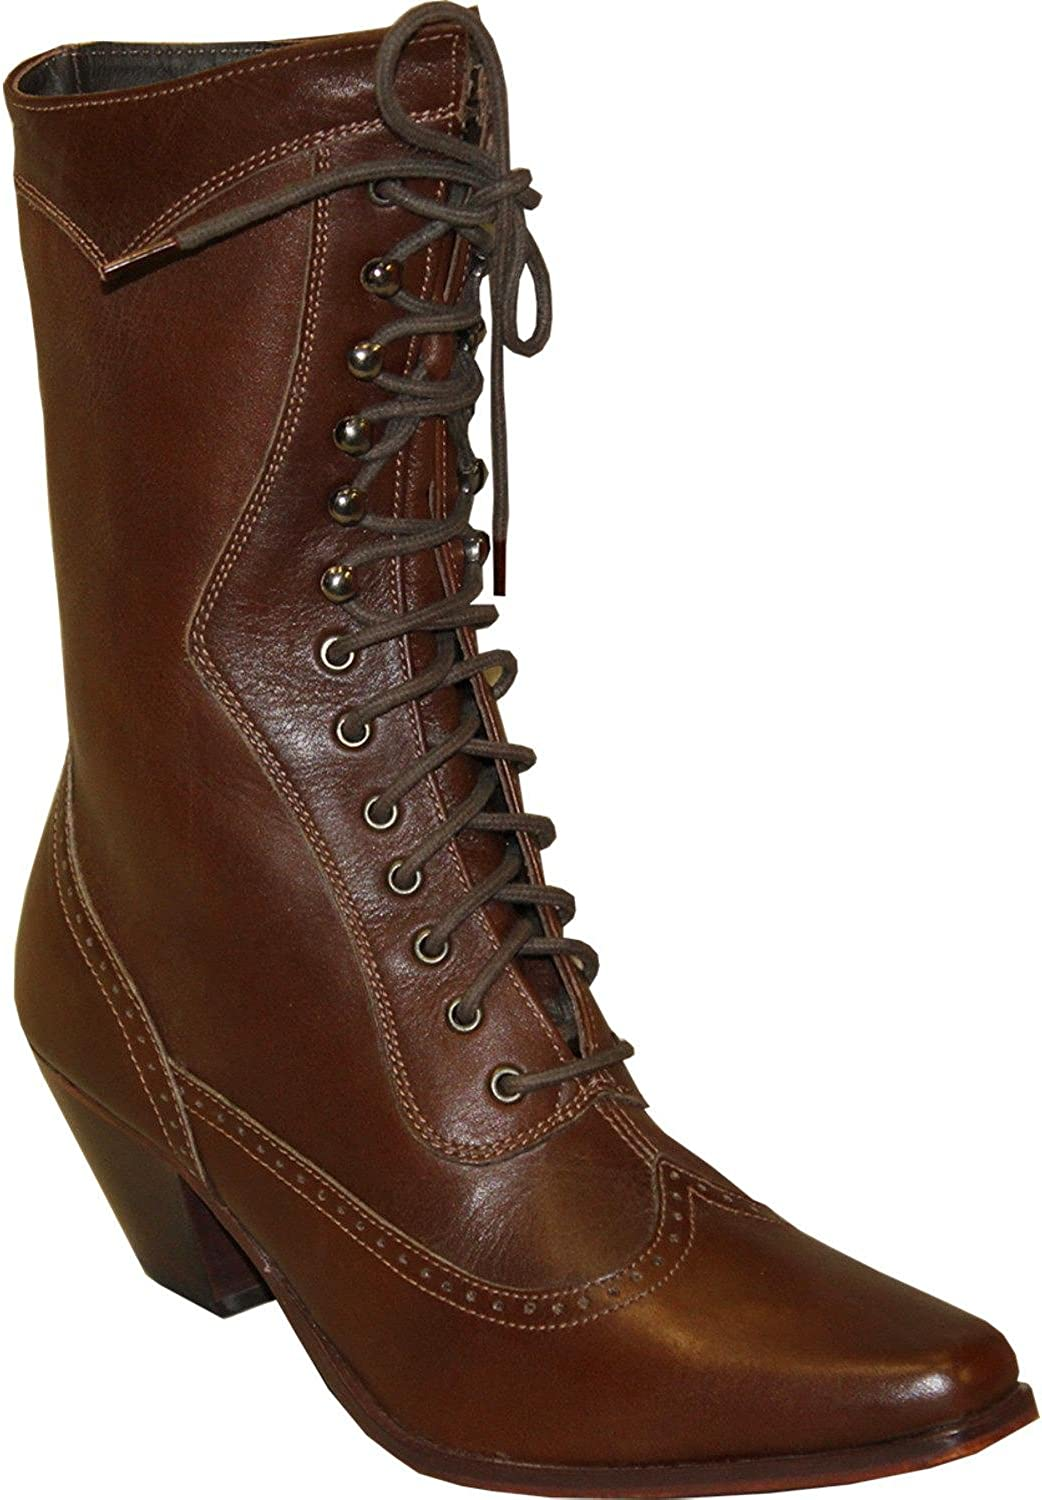 Abilene Women's Rawhide by 8  Victorian Lace Up Boot Snip Toe Brown 6.5 M